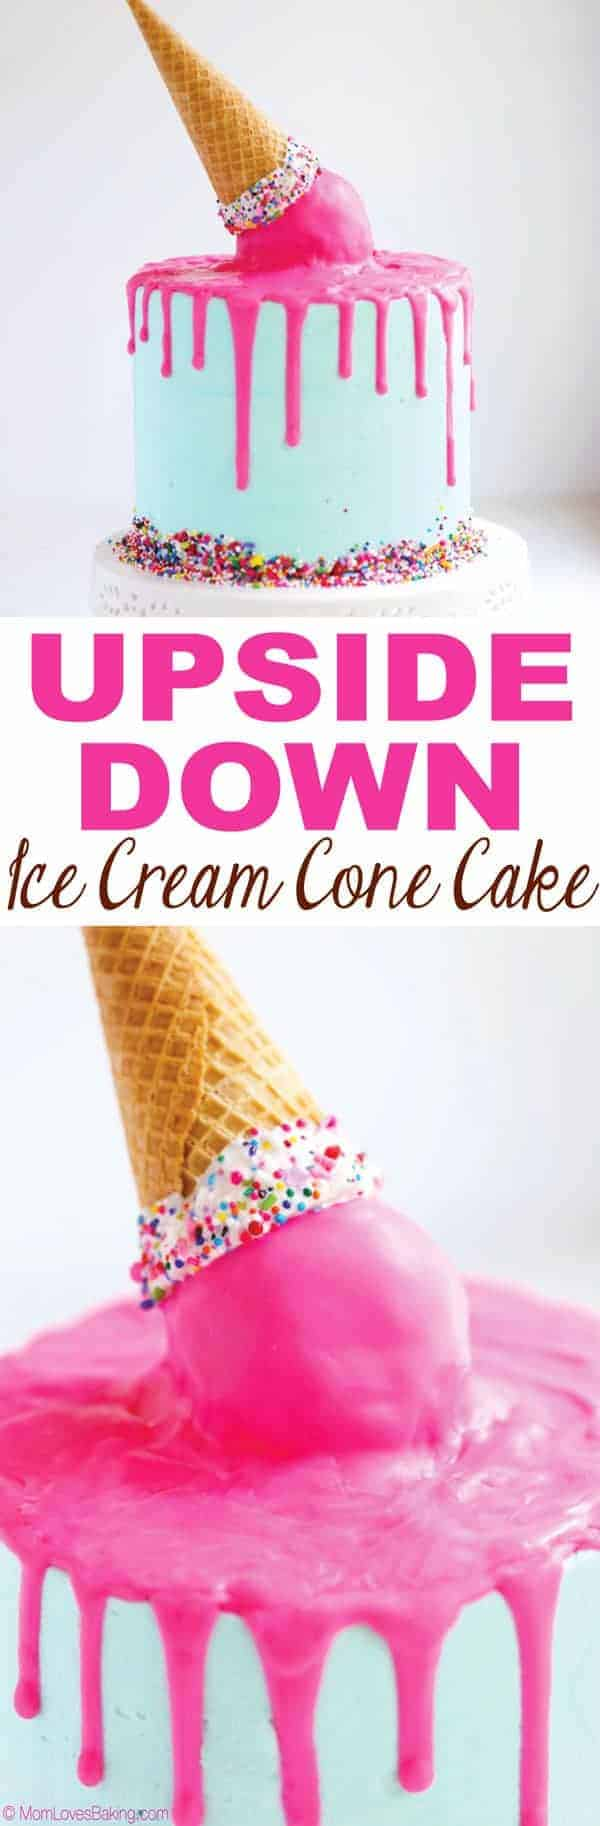 Upside Down Ice Cream Cone Cake Mom Loves Baking